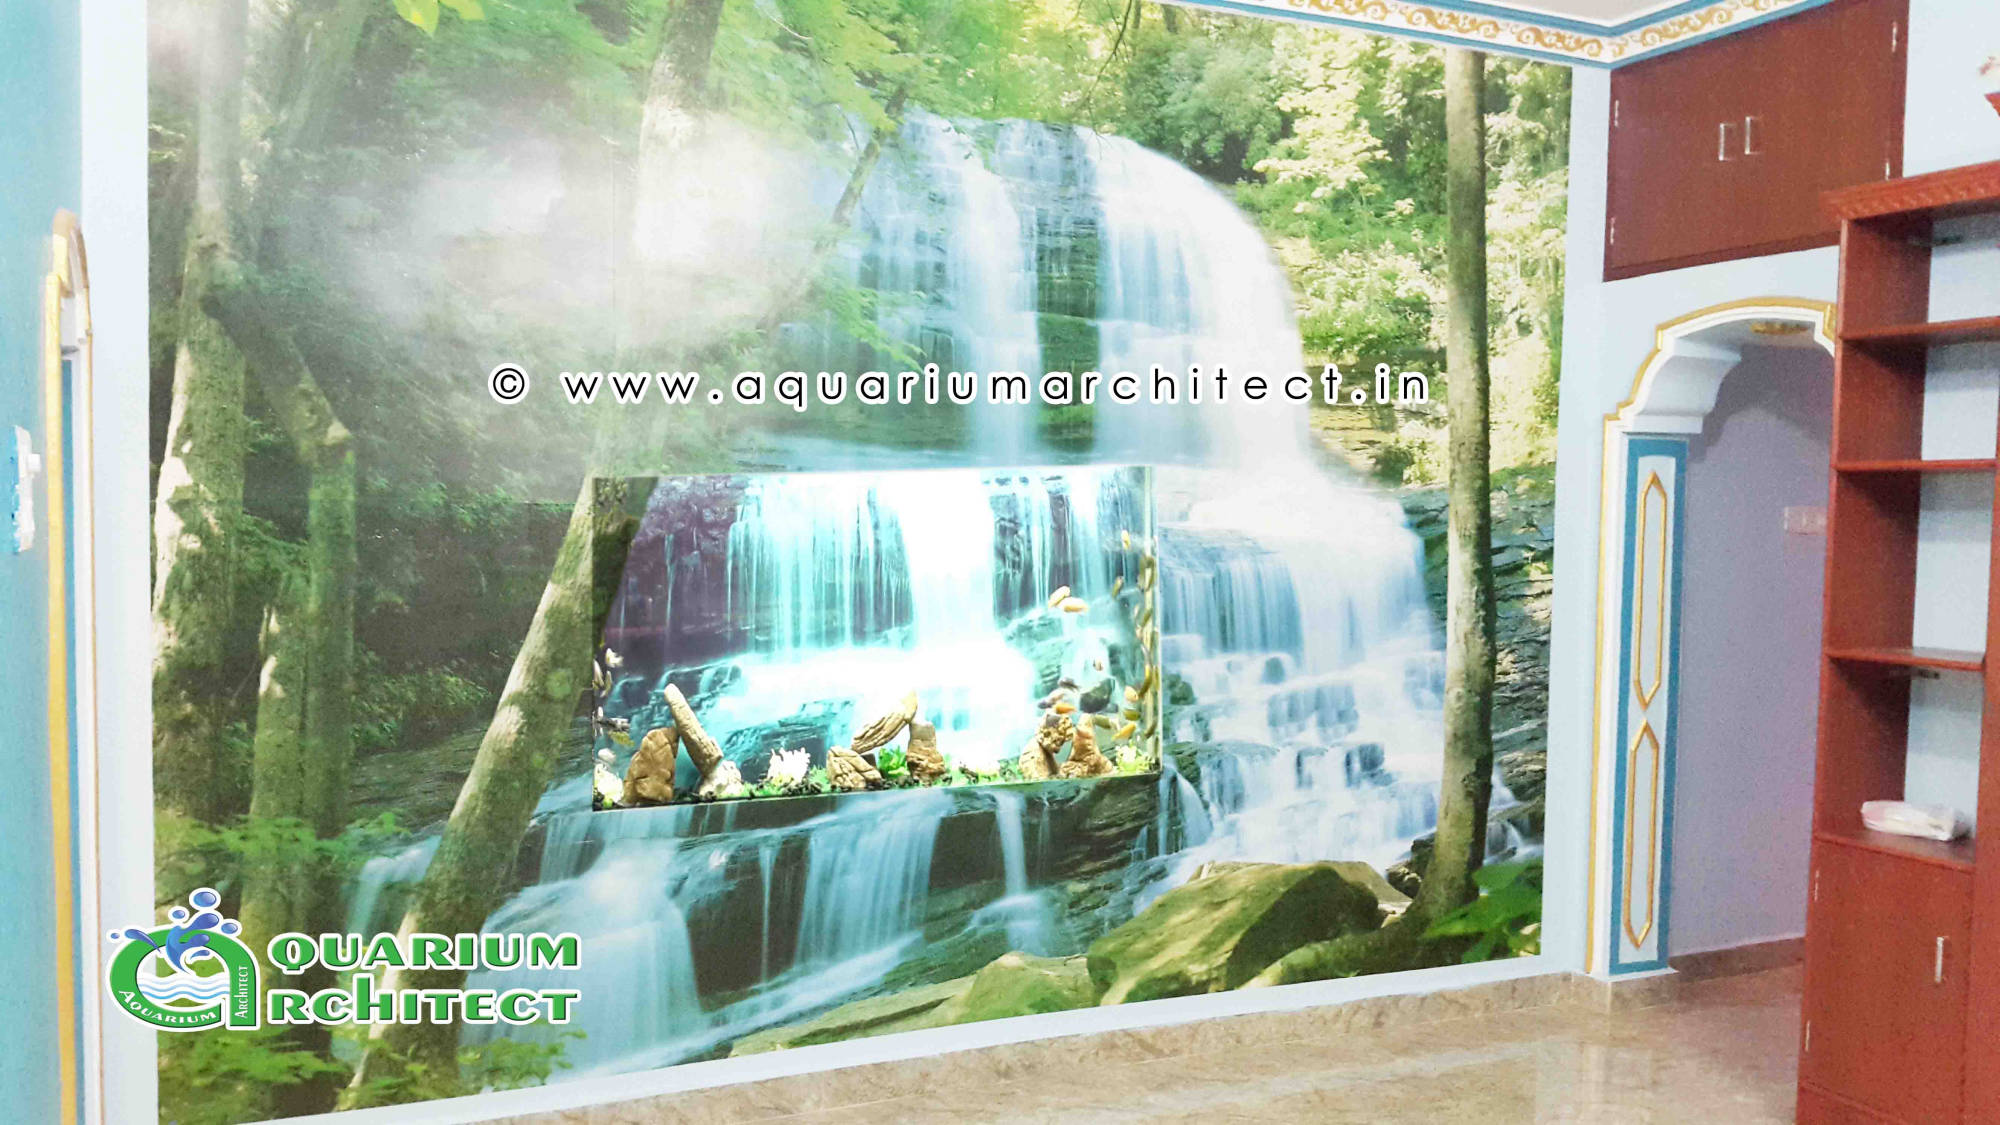 Aquarium in chennai | Aquarium architect | Customized aquarium designer | aquarium designer | gift aquarium